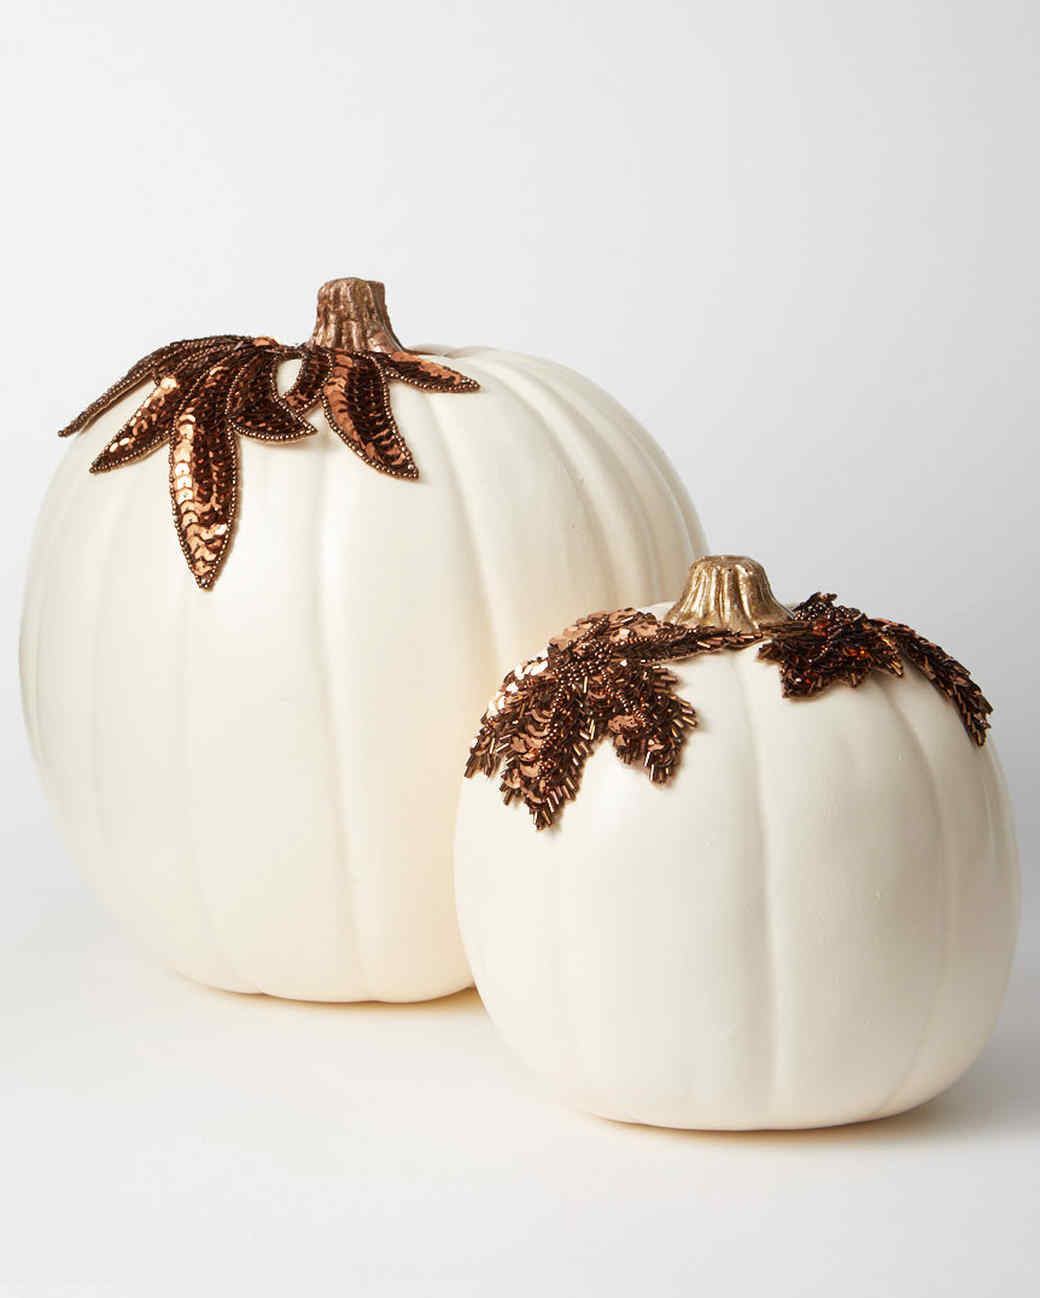 Applique Appliqué Pumpkins Martha Stewart